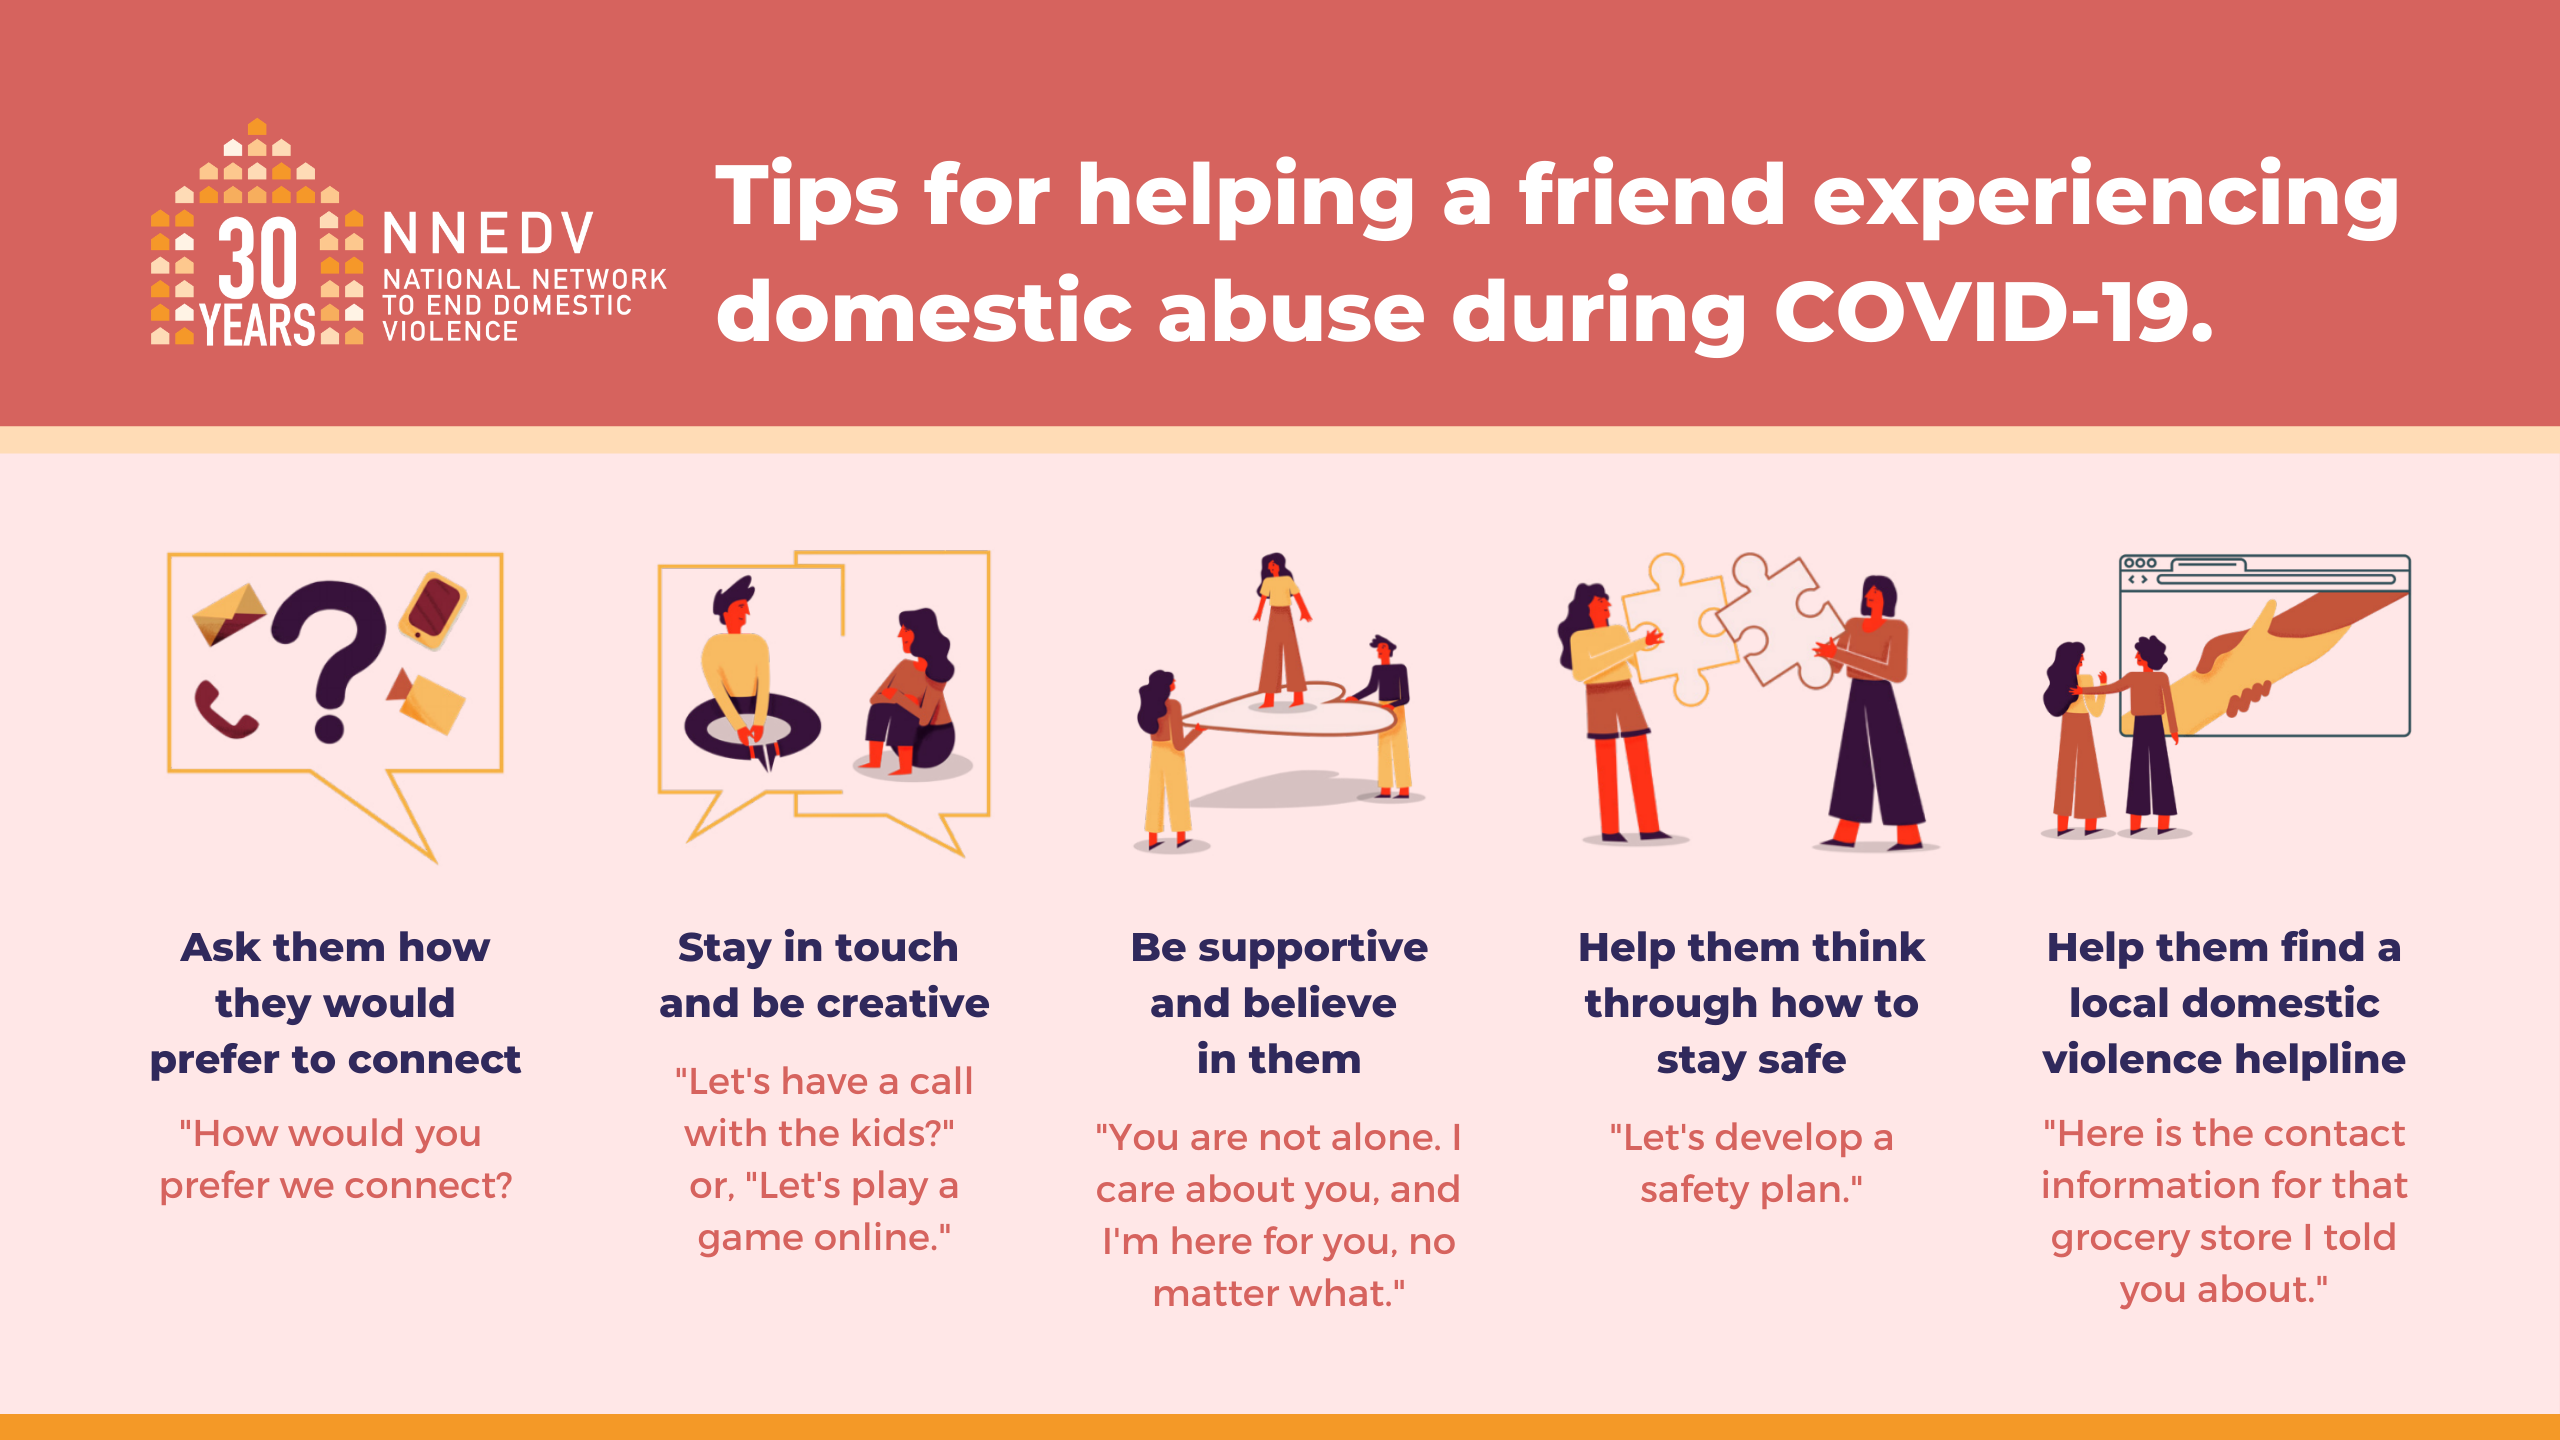 Figure 3: The image shows five ideas for how a person can help their friend who might be experiencing domestic violence. The image is by the National Network to End Domestic Violence (NNEDV).